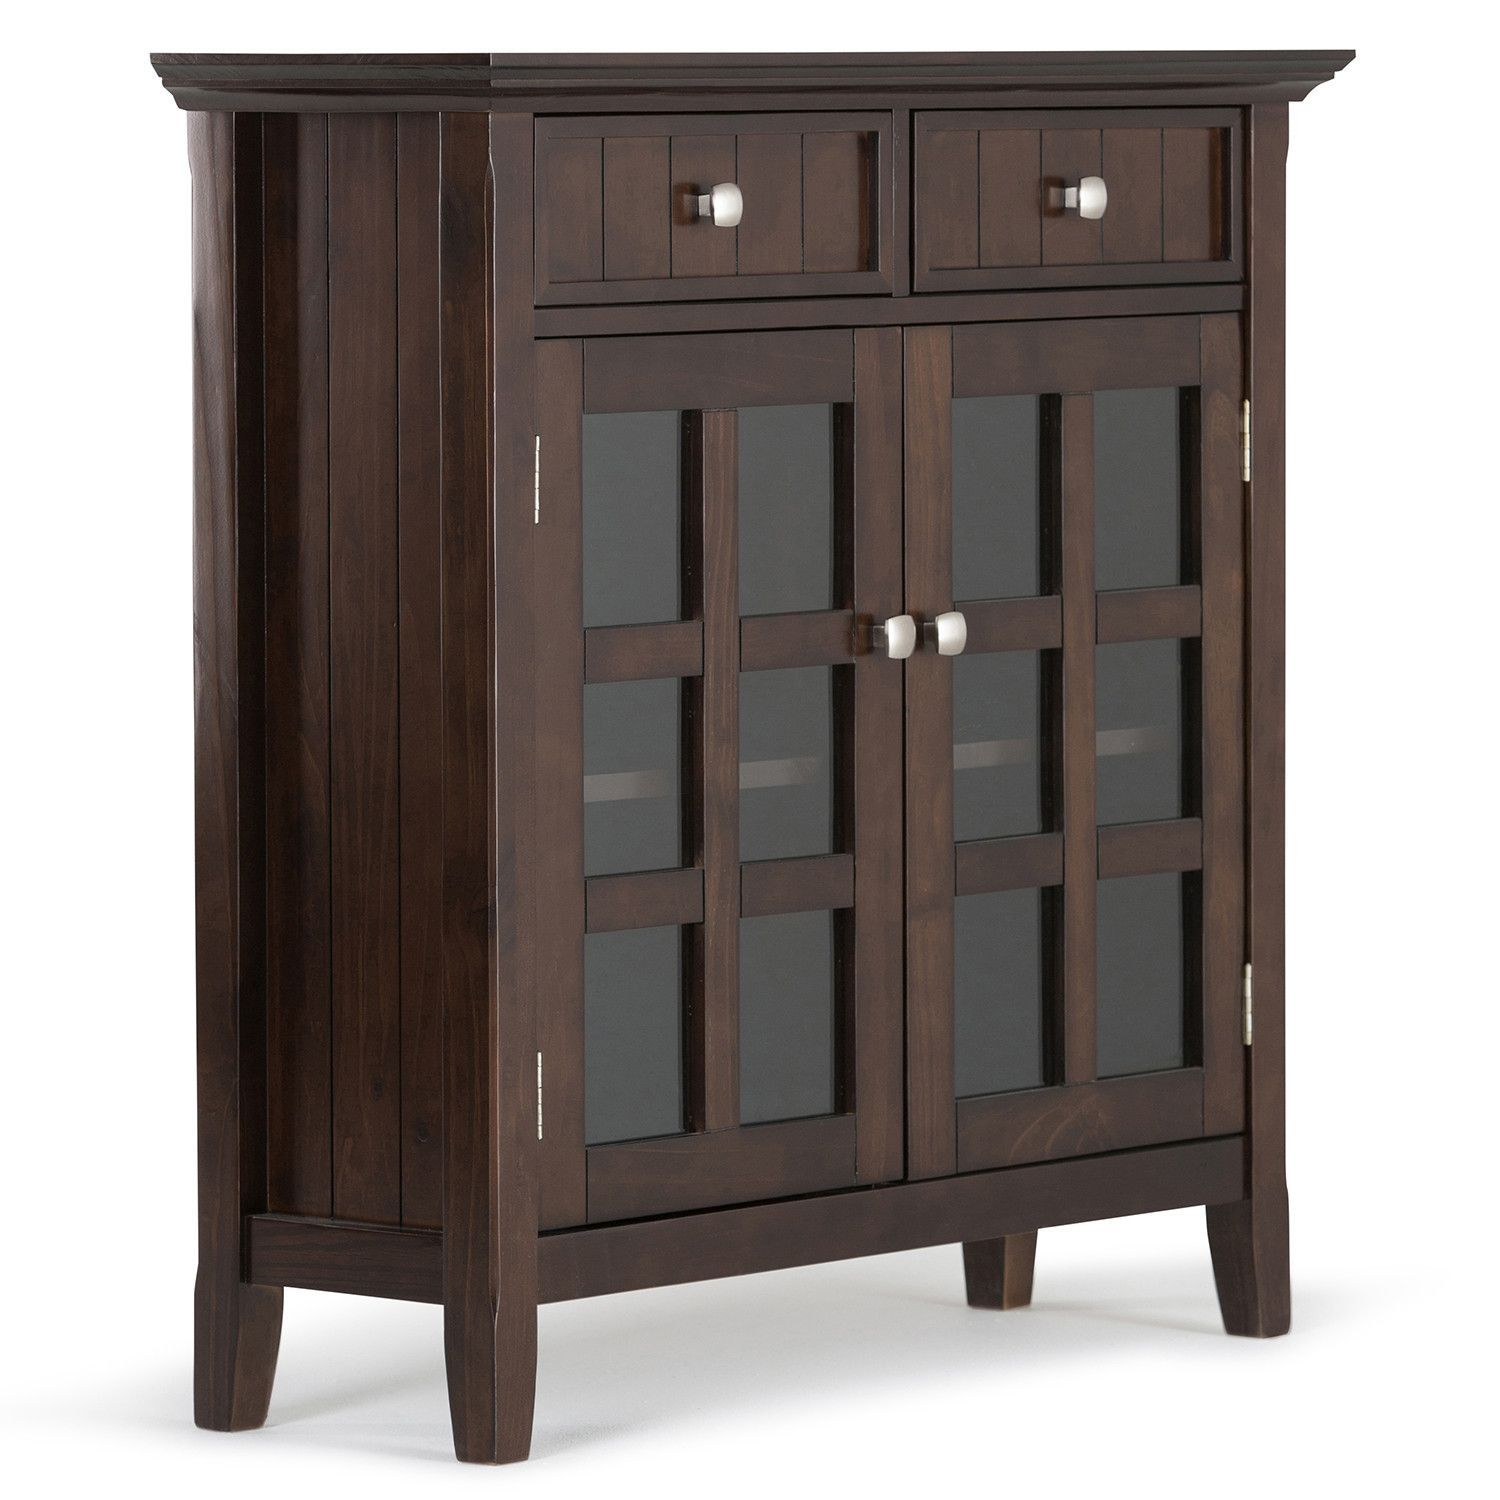 Acadian 36 x 12 x 36 inch Entryway Storage Cabinet in Tobacco Brown